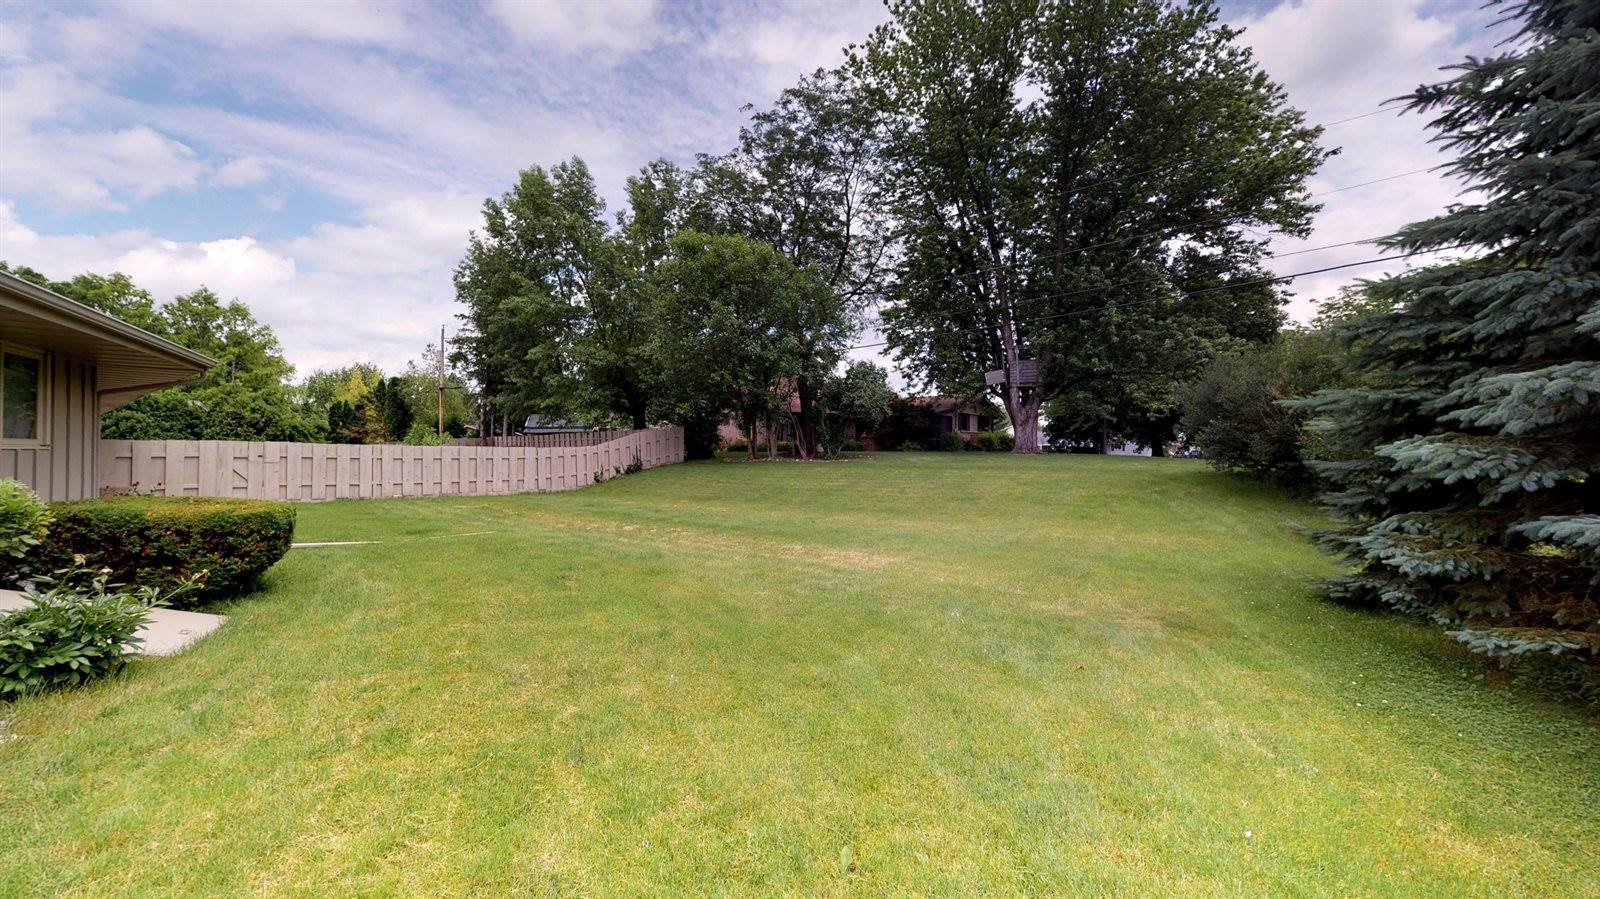 349 S Woodland Dr, Whitewater, WI 53190